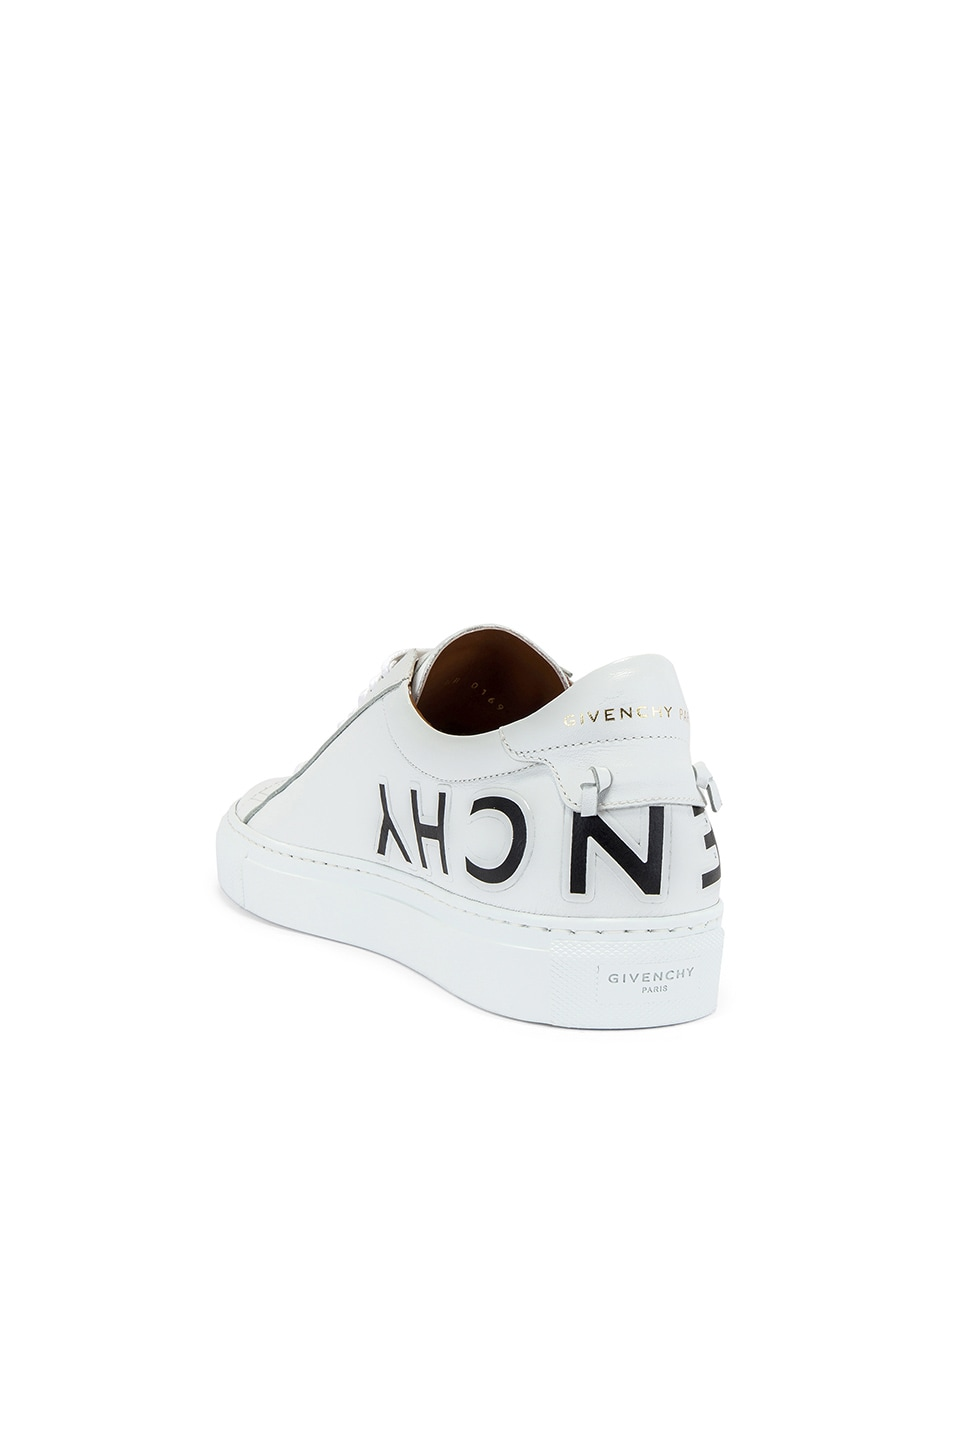 Image 3 of Givenchy Urban Street Sneaker in White & Black